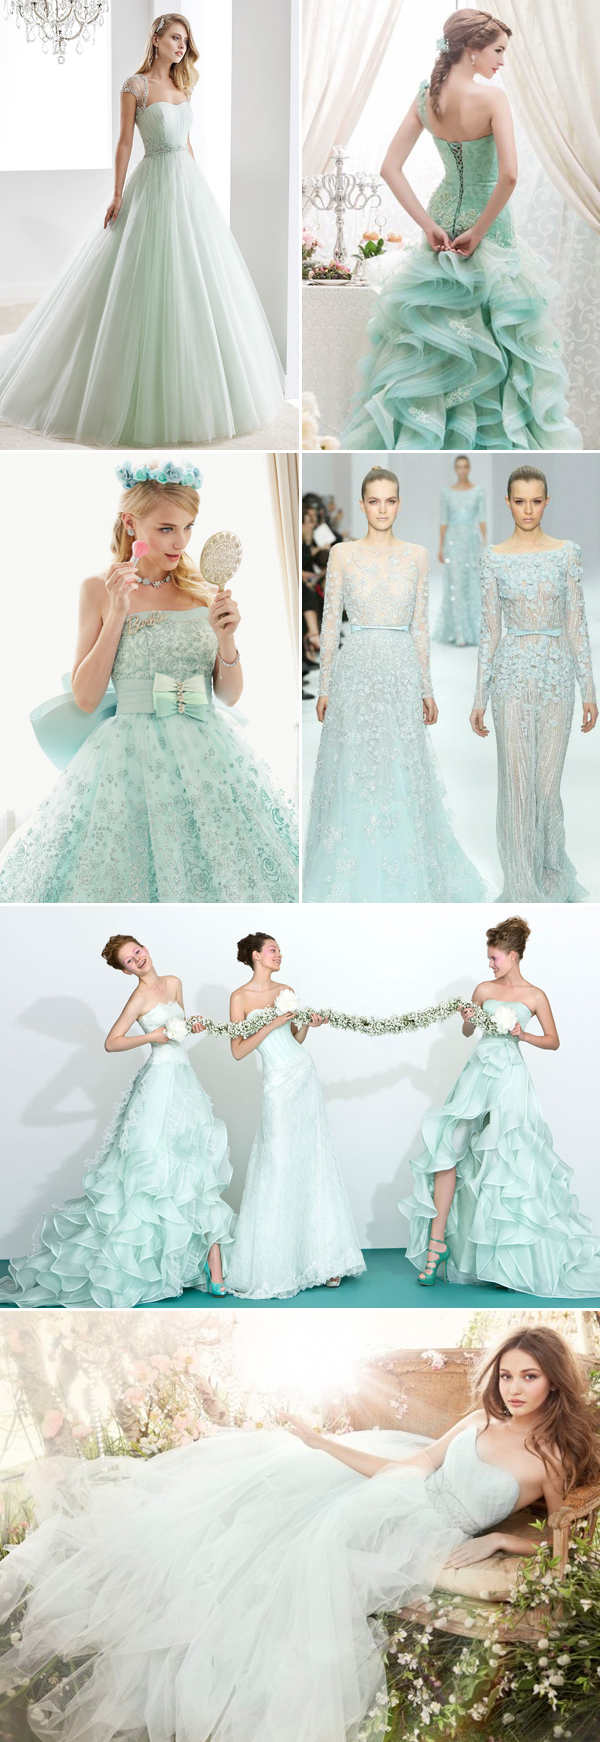 30 Oh-So-Romantic Pastel Wedding Dresses! - Praise Wedding